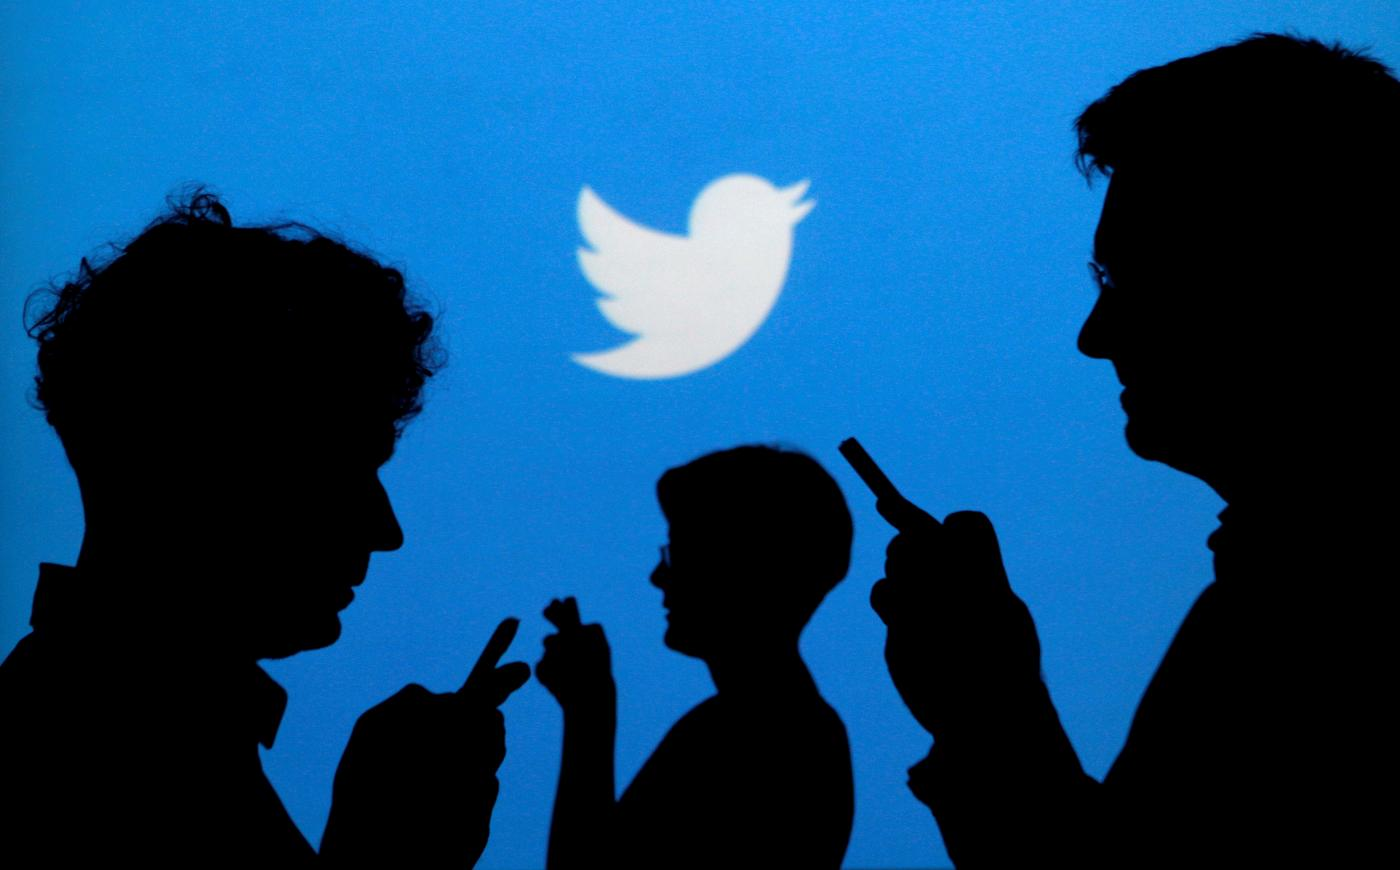 People hold mobile phones against a backdrop projected with the Twitter logo (Reuters)